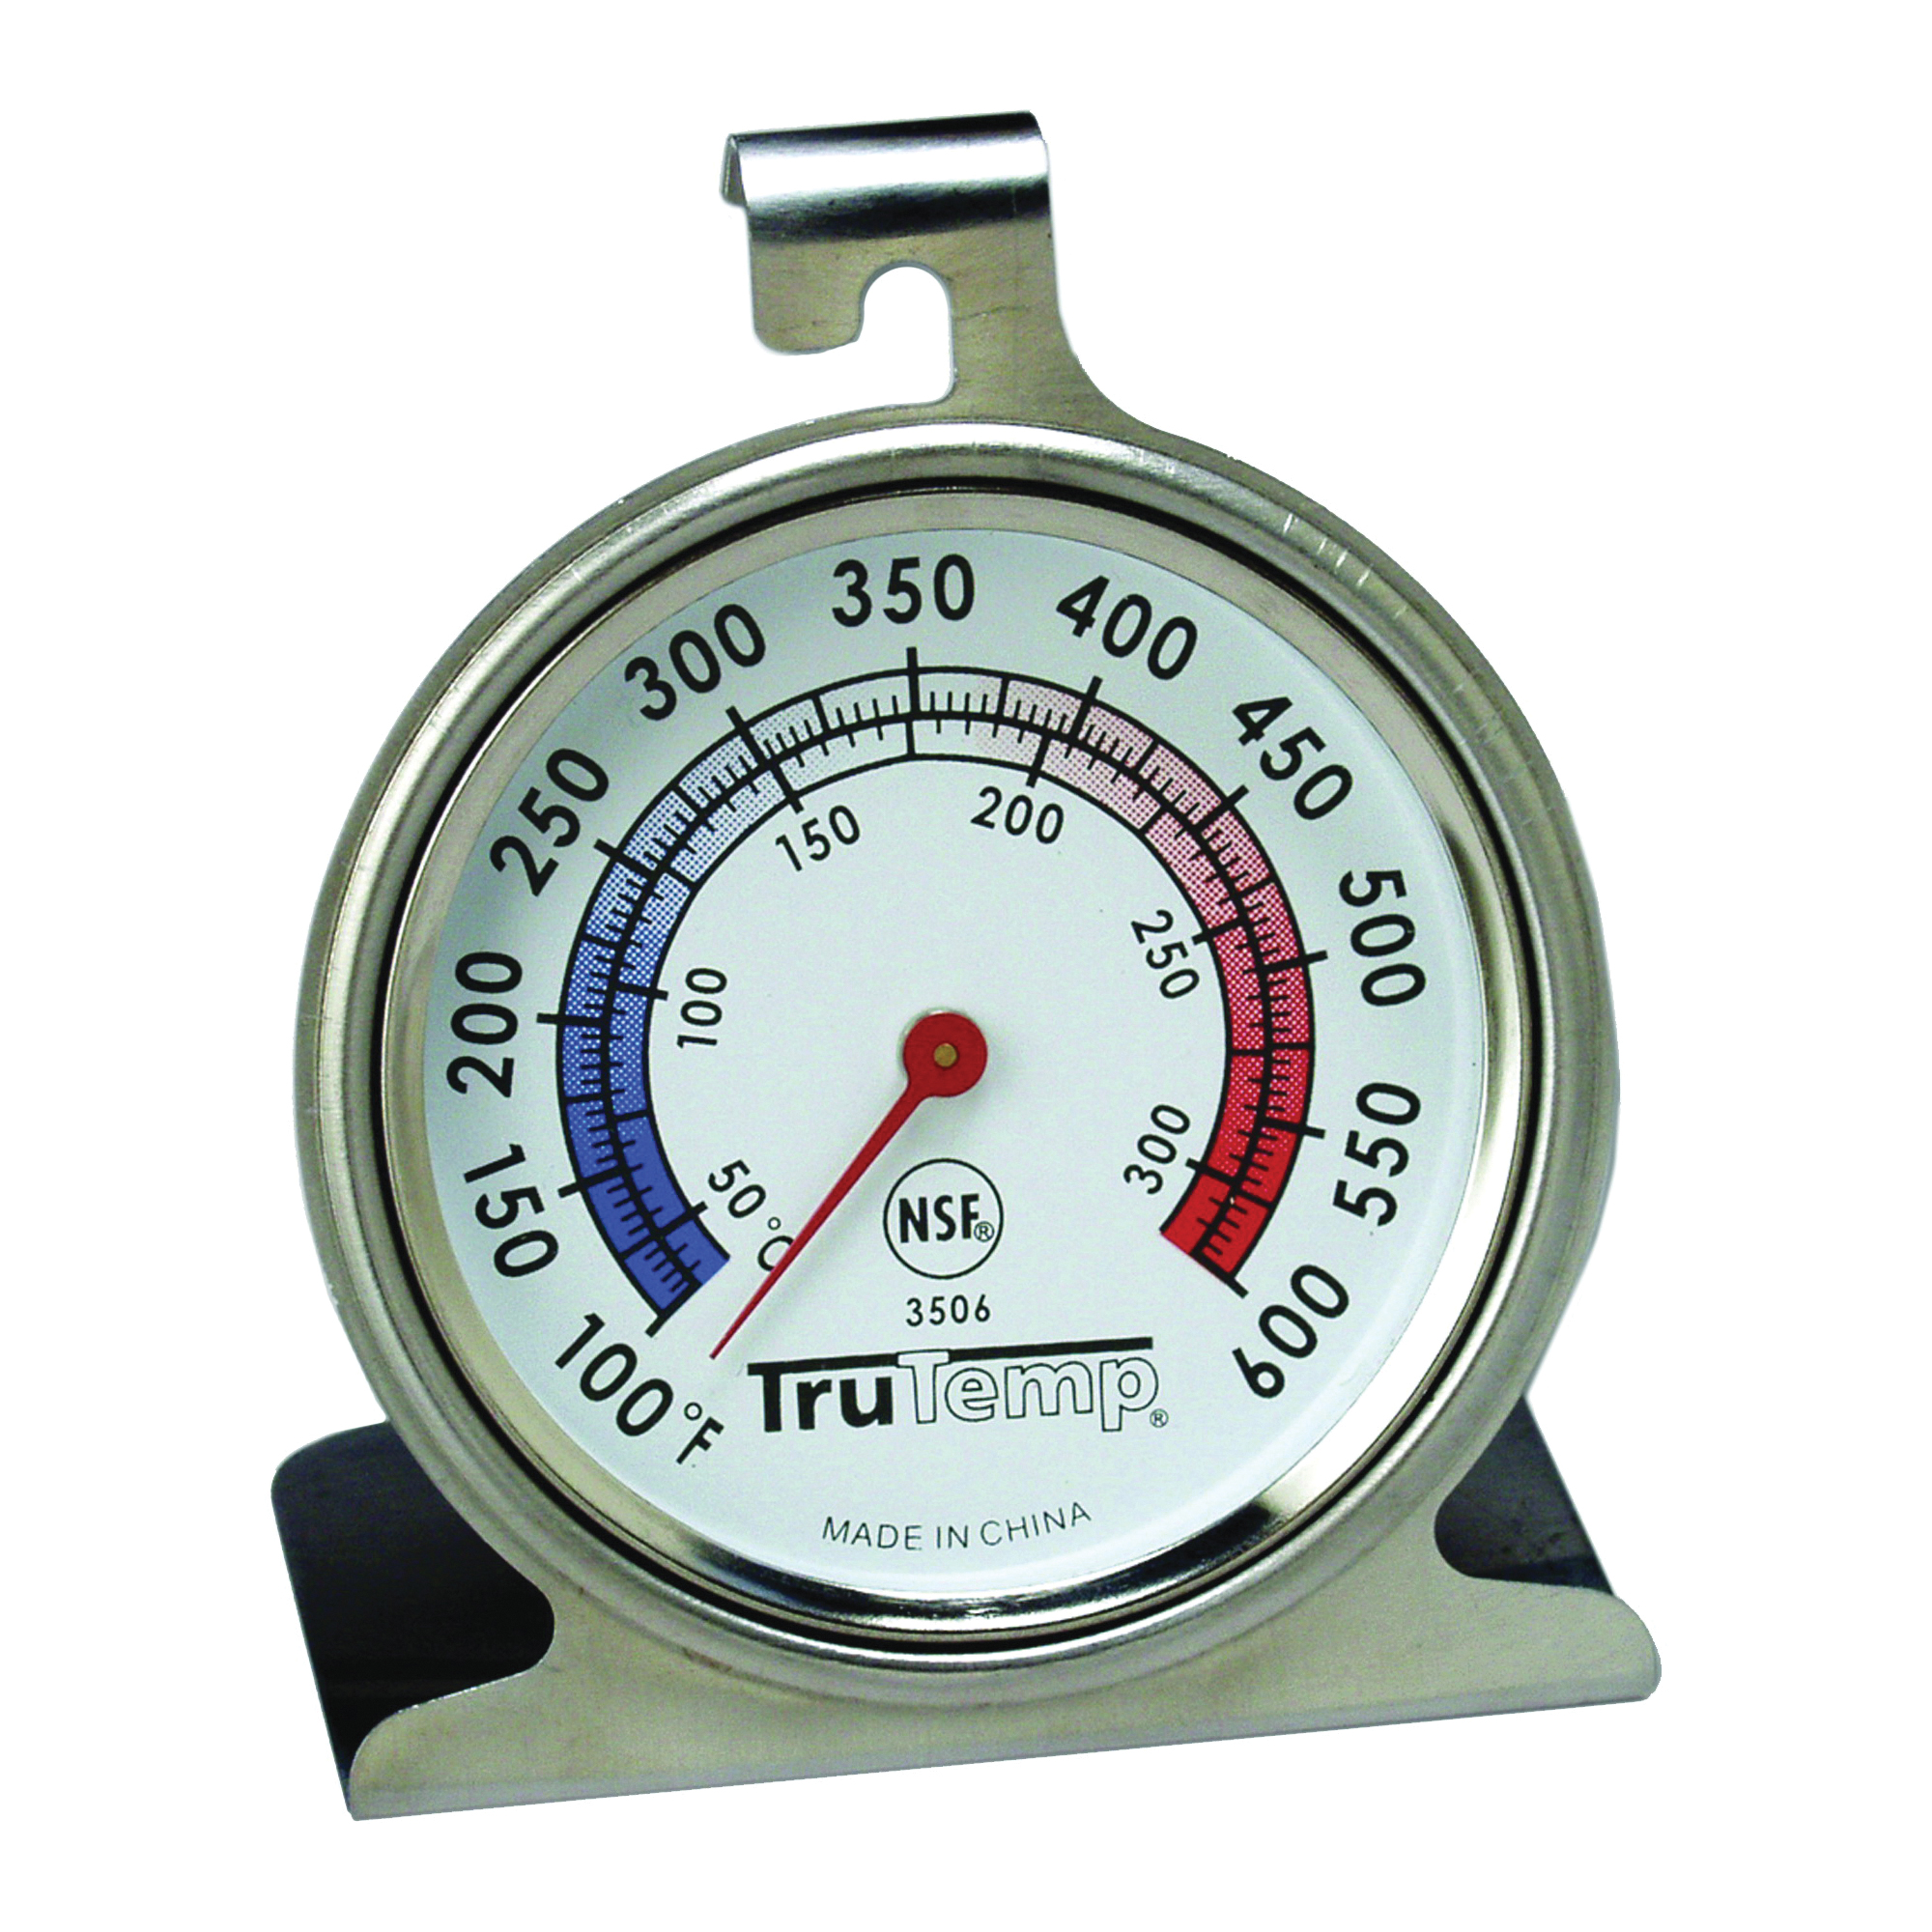 Picture of Taylor 3506 Oven Thermometer, 100 to 600 deg F, Analog Display, Gray